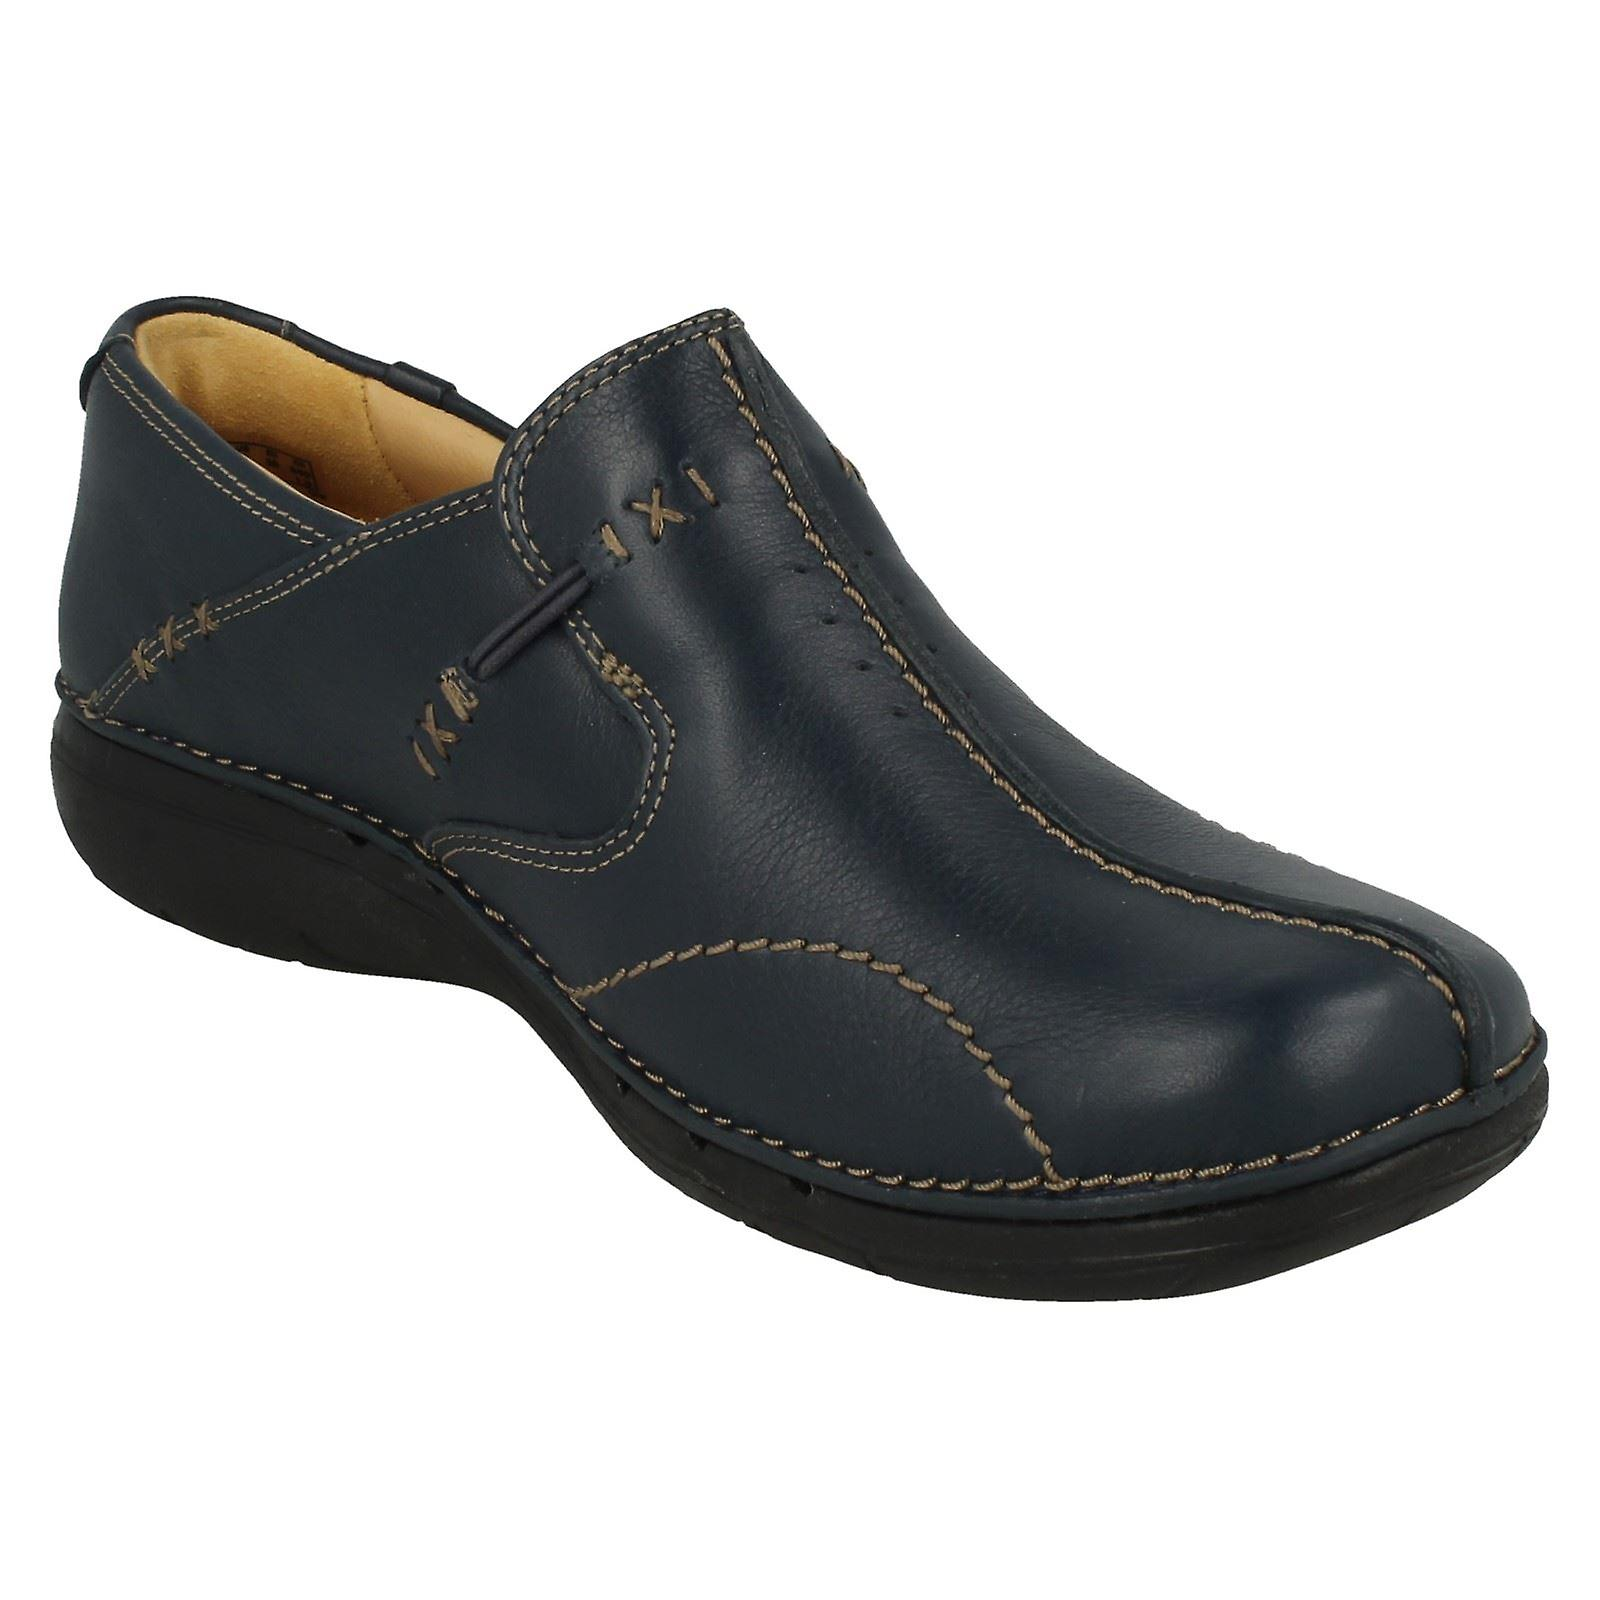 Clarks Ladies Structured Shoes